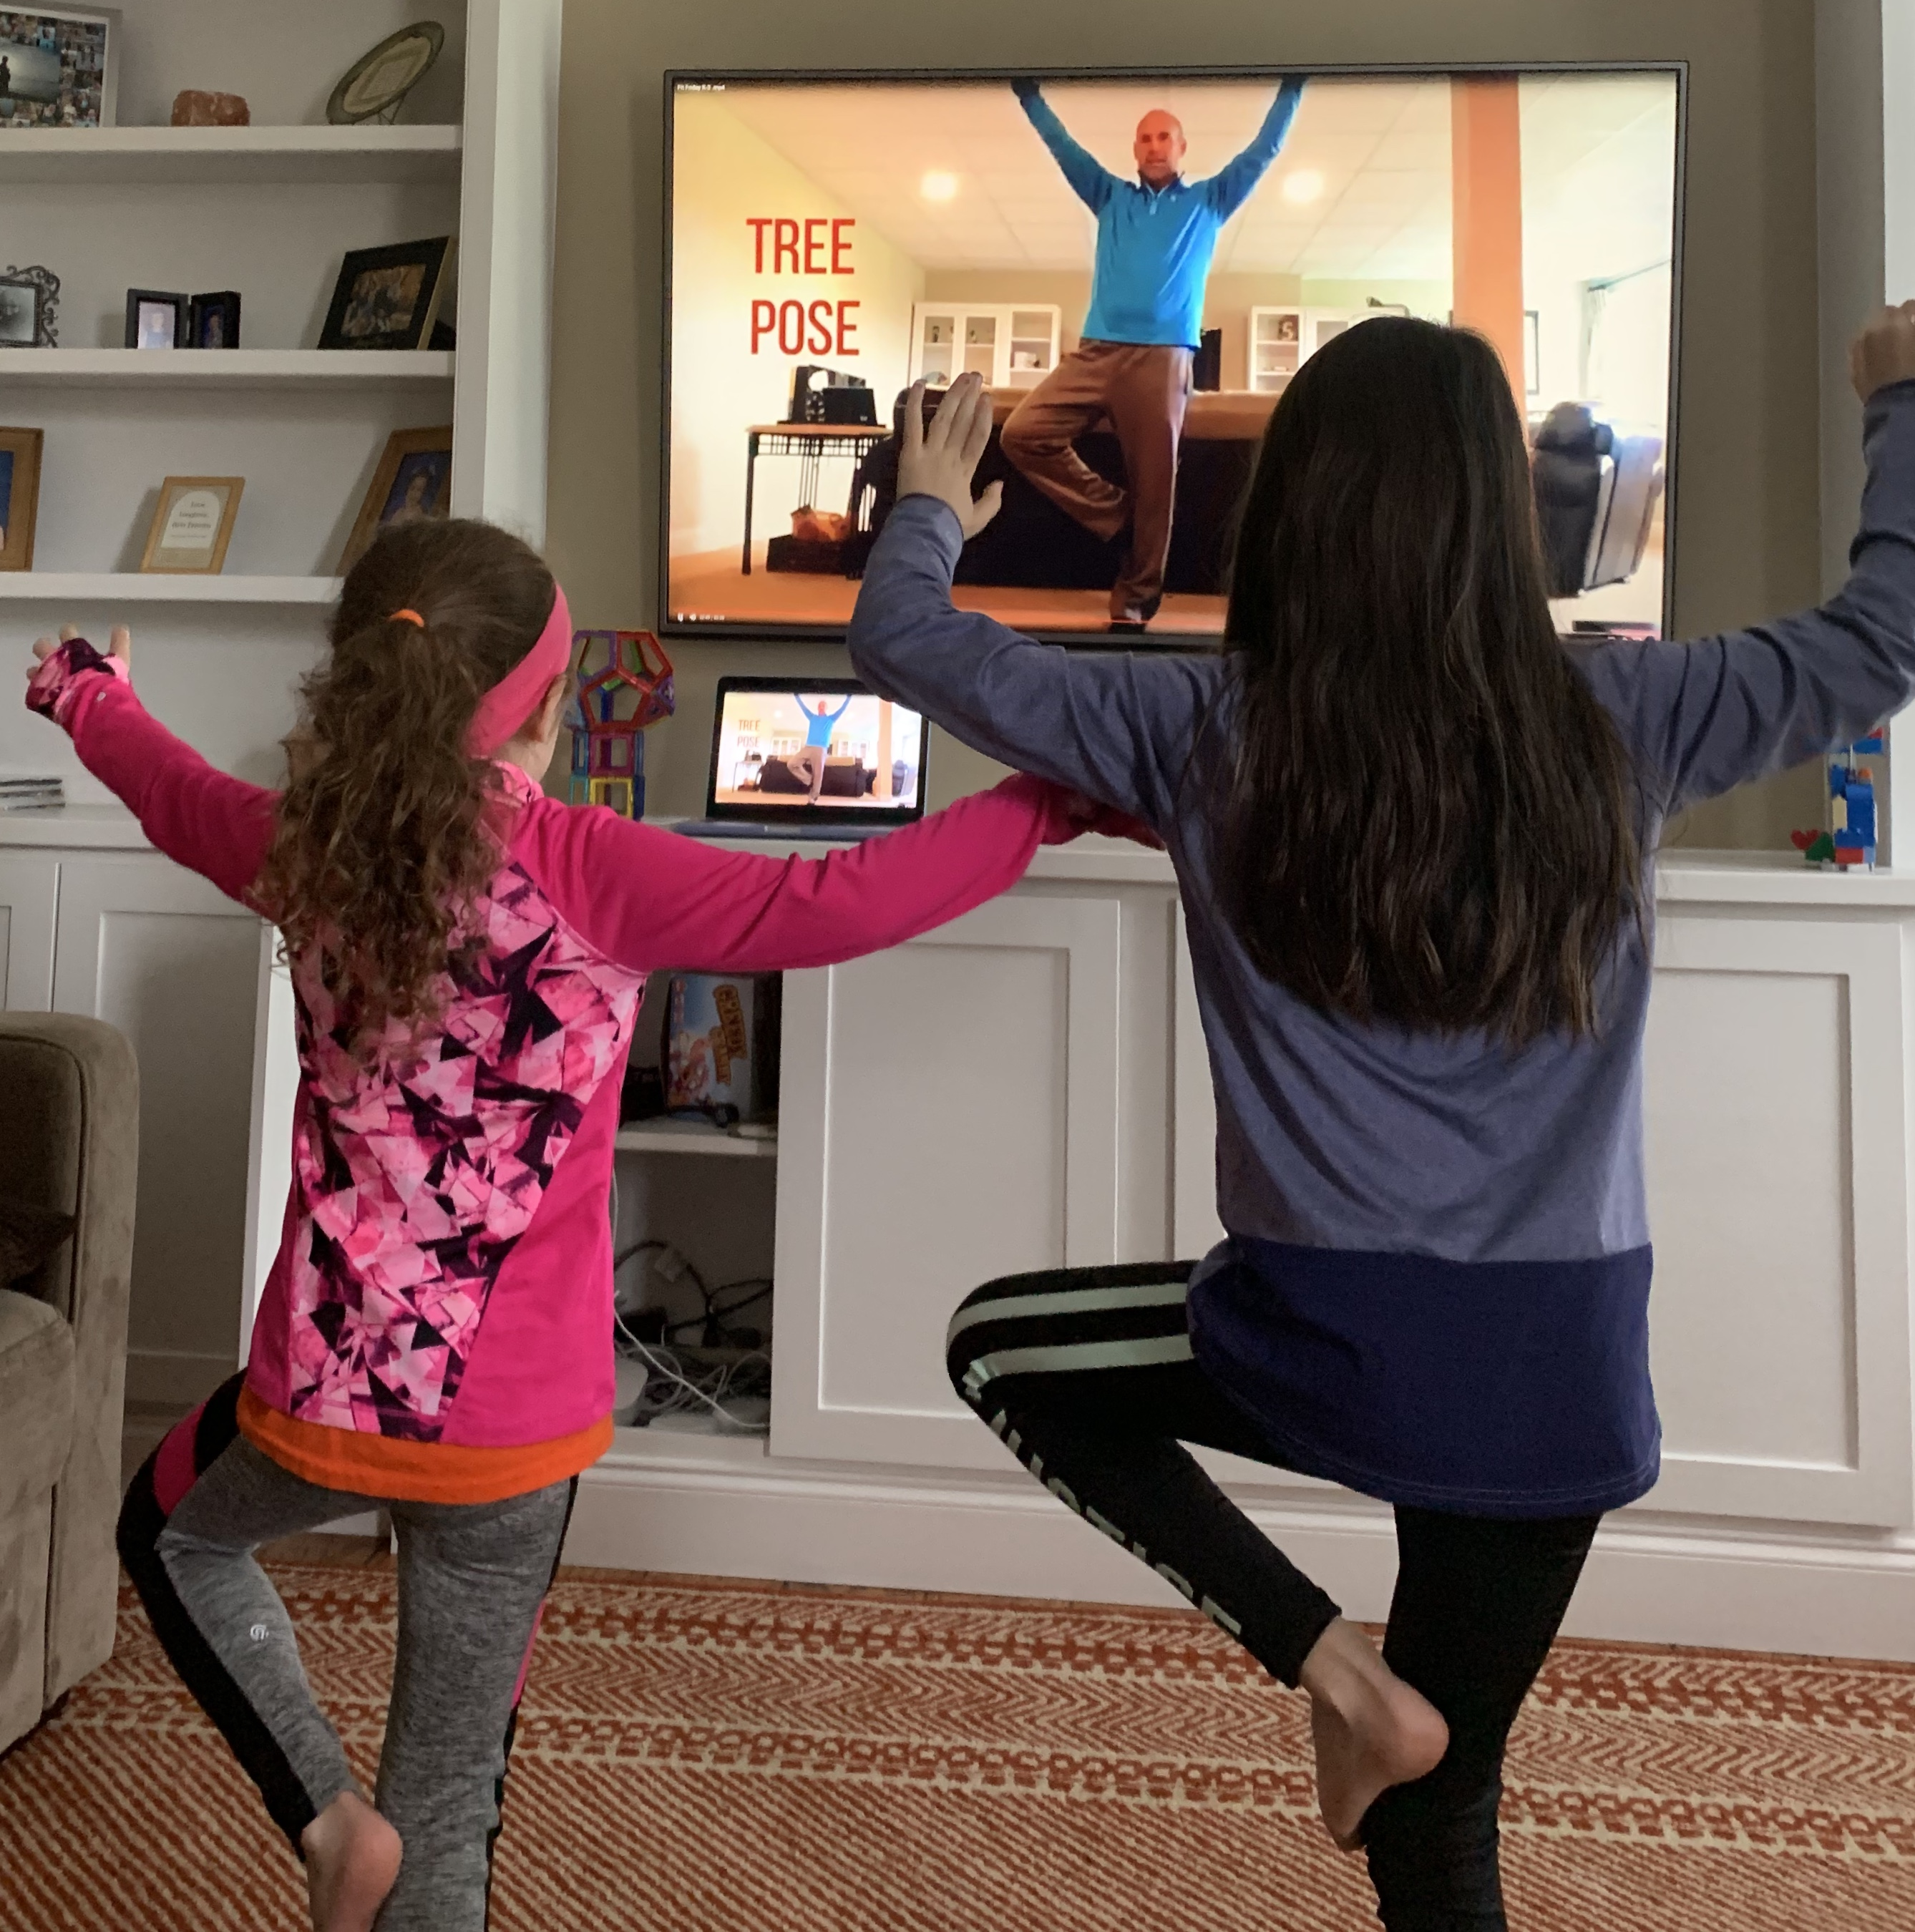 Two girls doing a standing yoga pose along with a man on TV